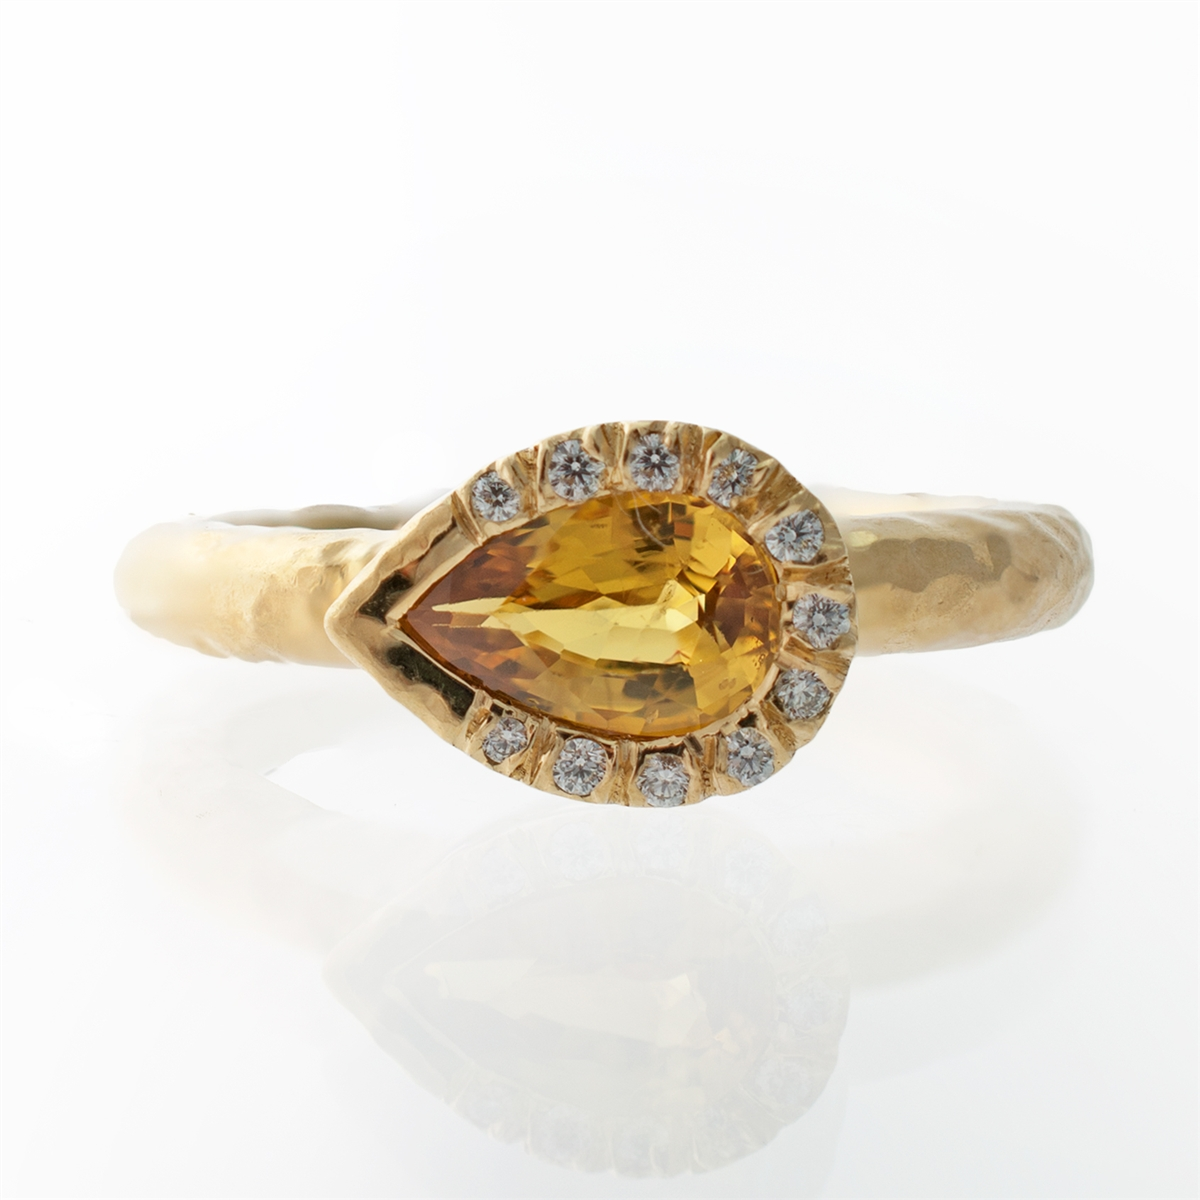 rings products yellow gemstone urban yuj bezel gems sapphire lisa eldridge carats ring gold